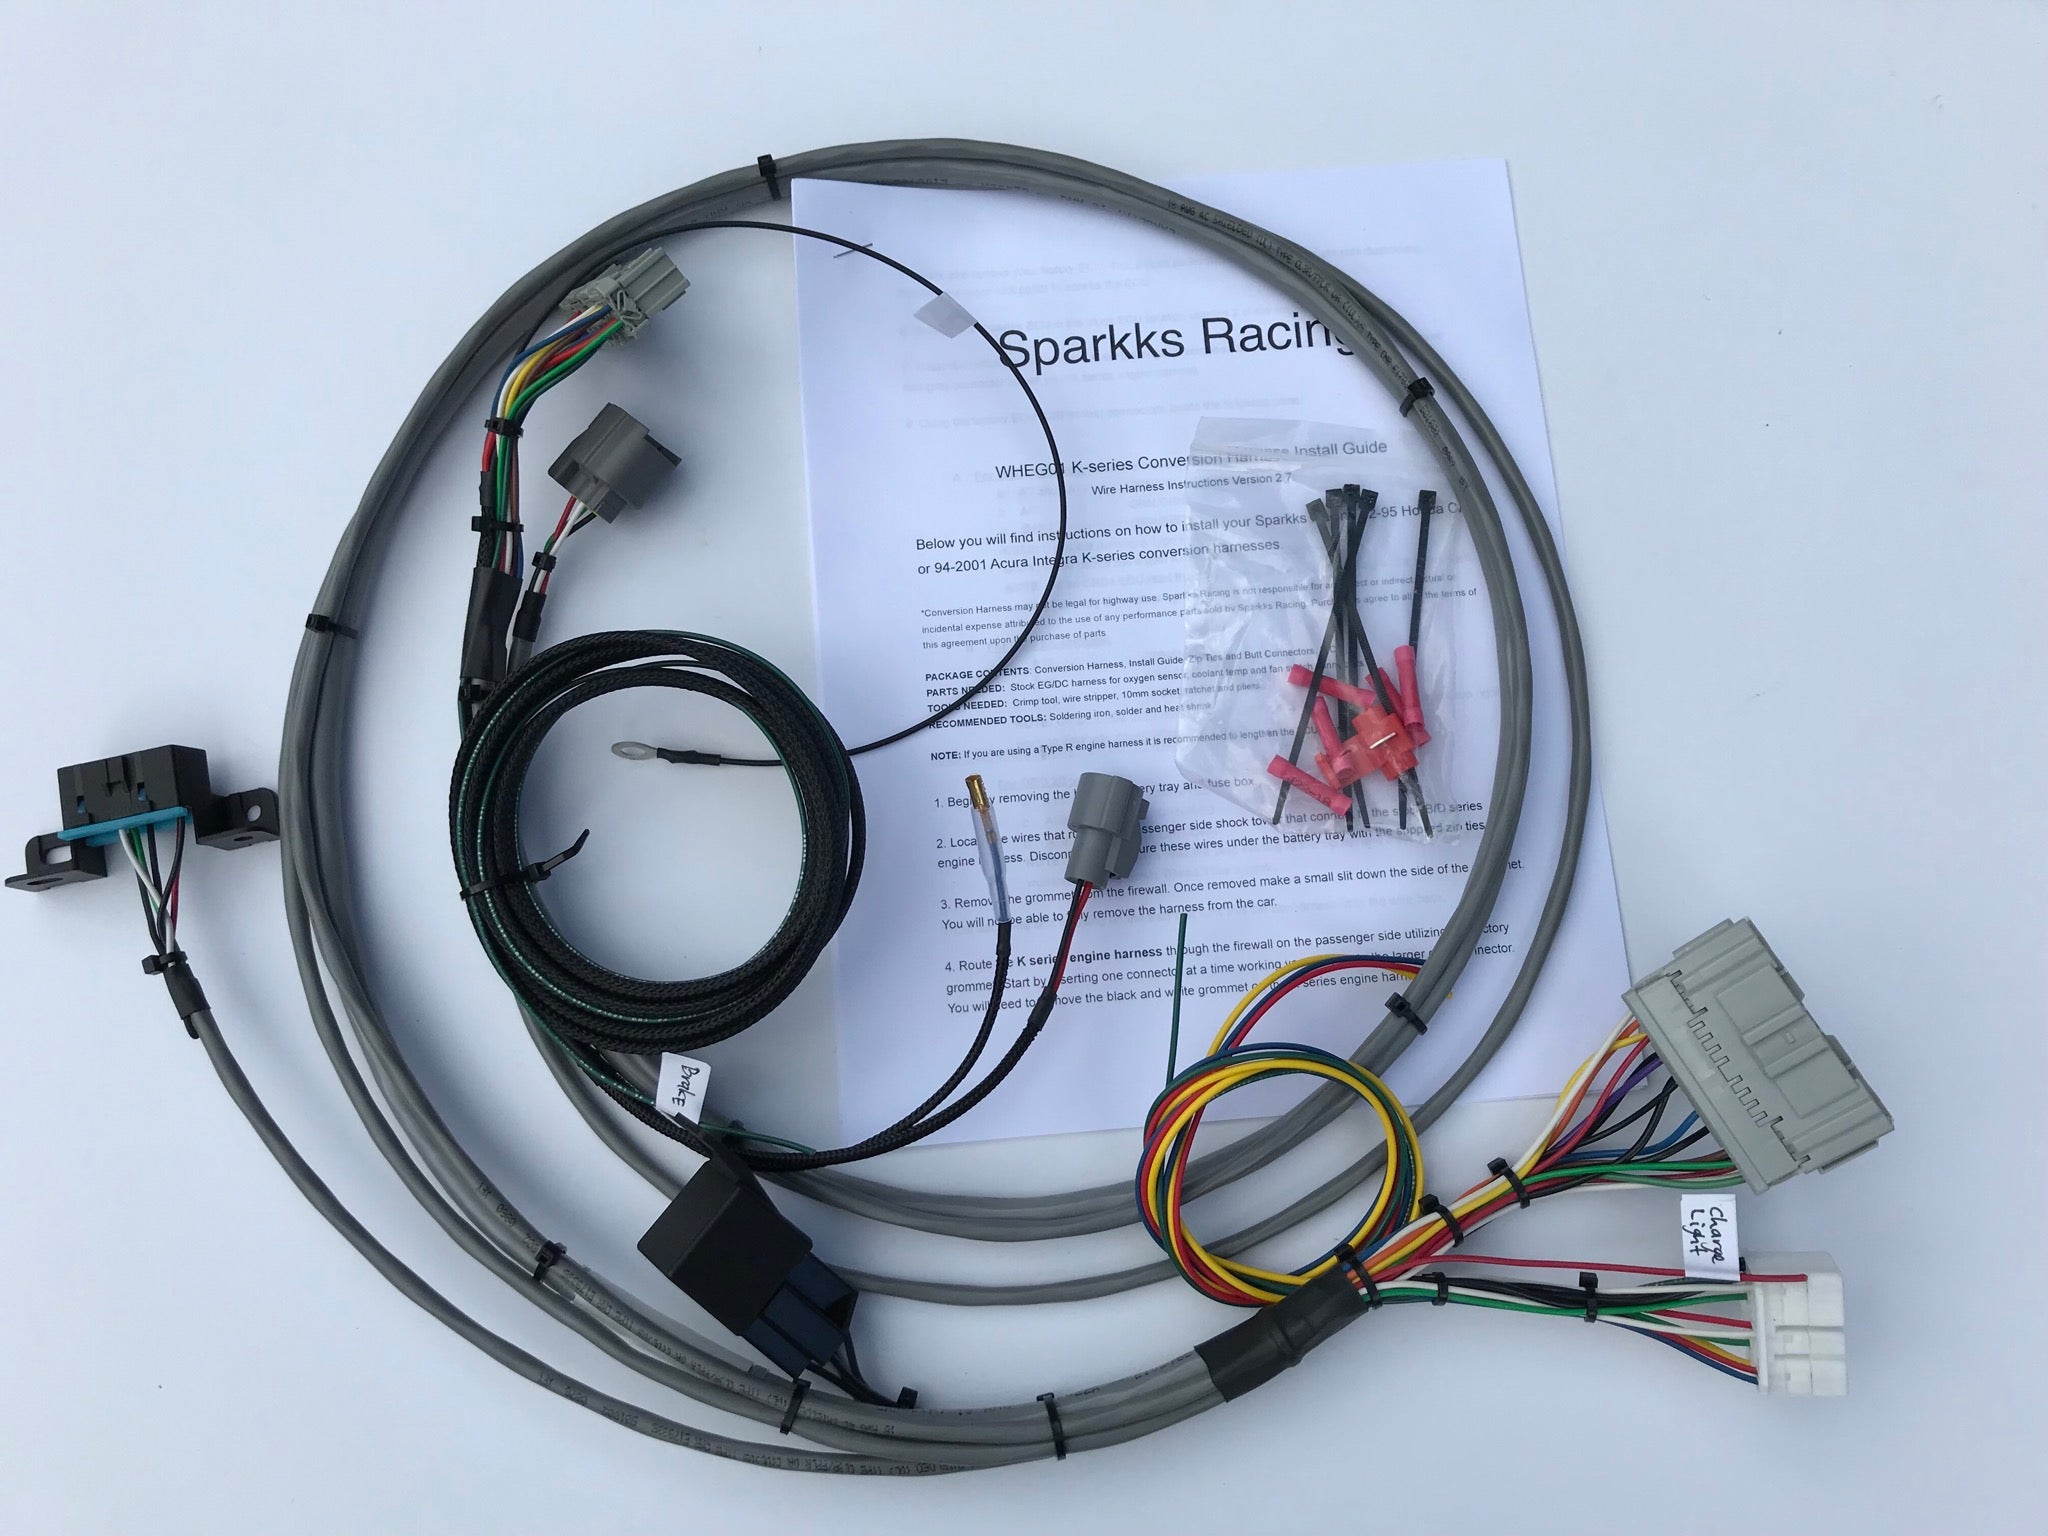 small resolution of sparkks racing honda kseries conversion harness 92 95 civic or 94image of sparkks racing honda kseries